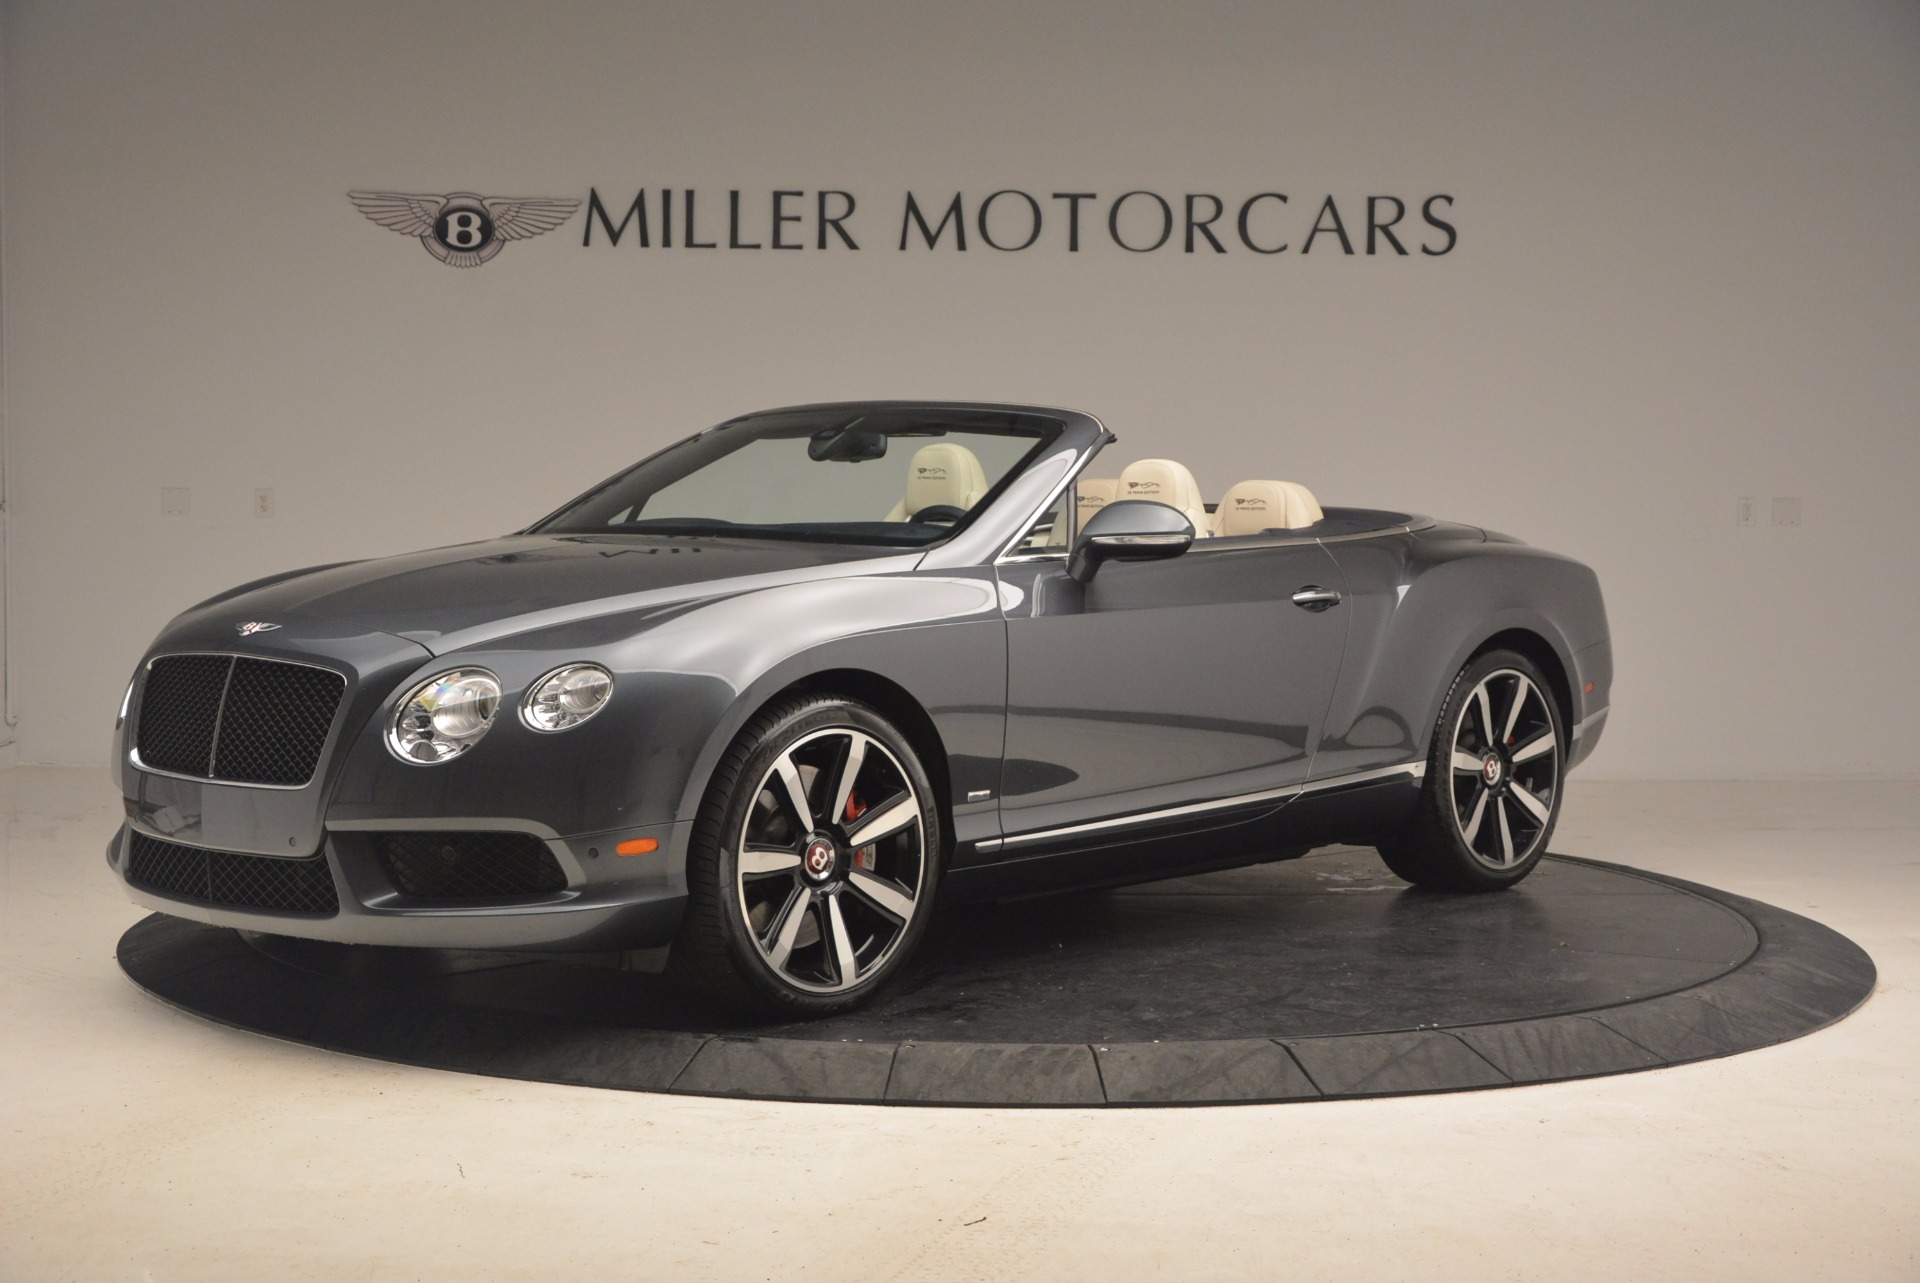 Used 2013 Bentley Continental GT V8 Le Mans Edition, 1 of 48 For Sale In Westport, CT 1288_p2